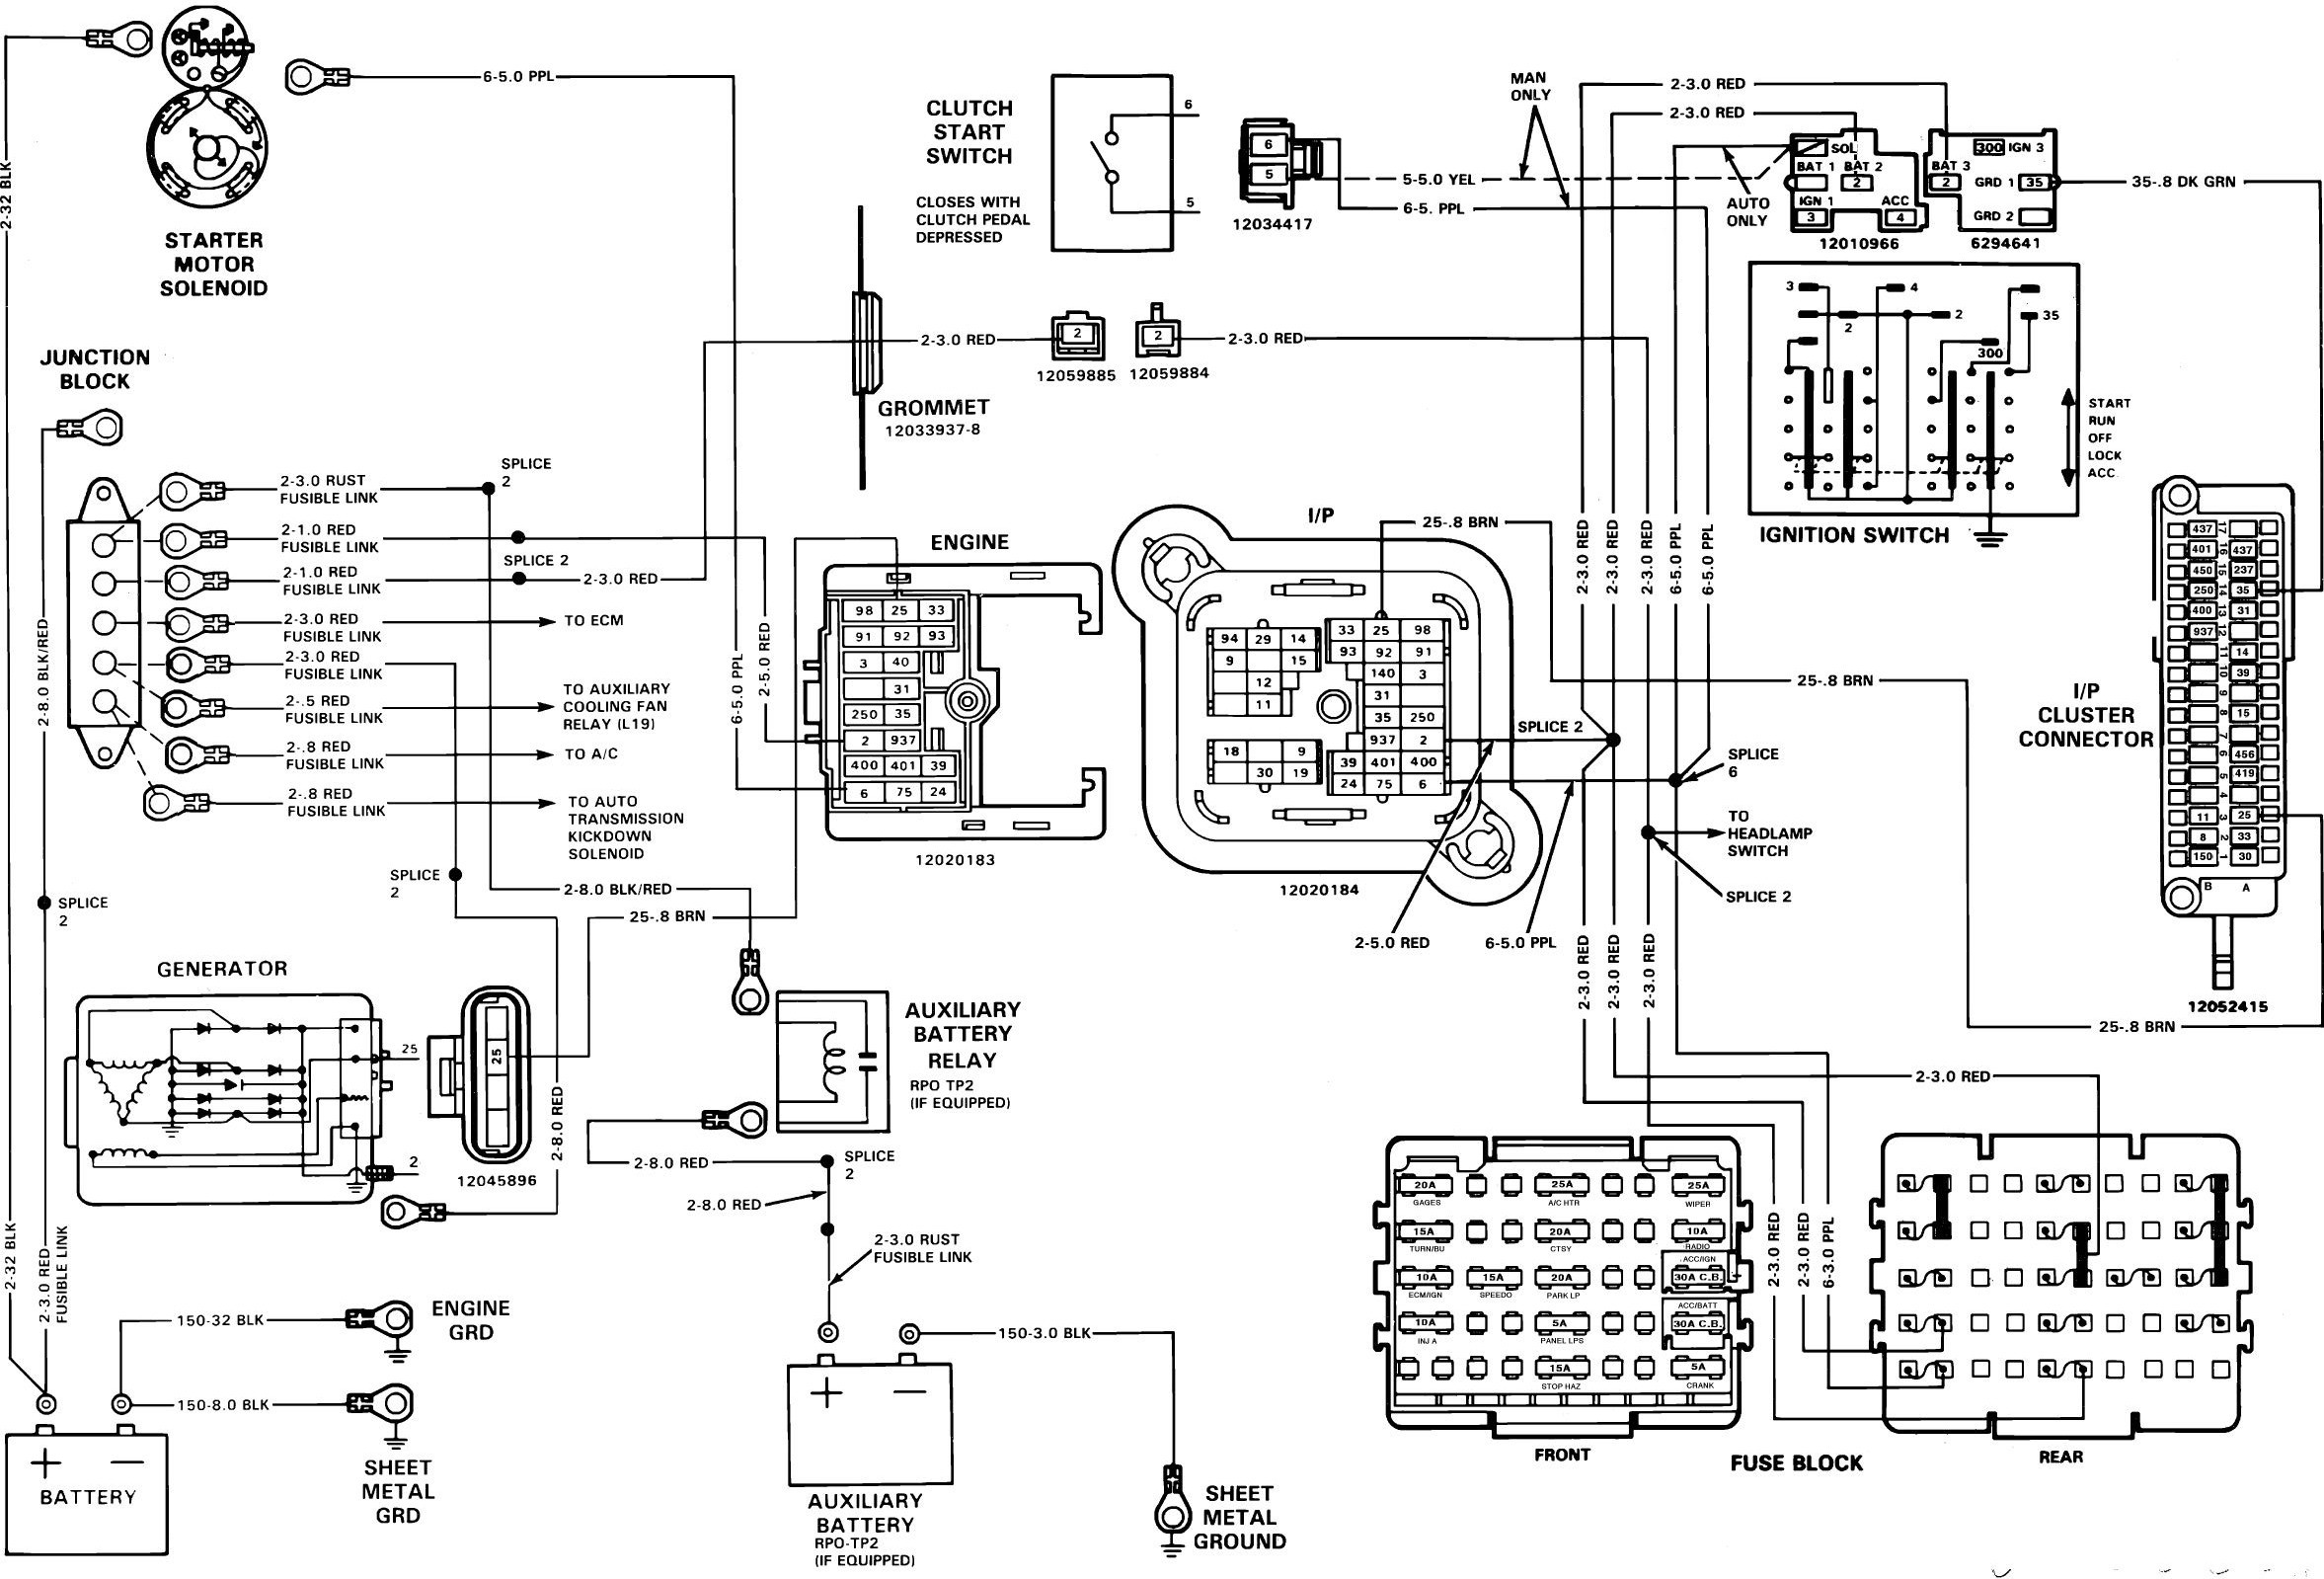 1990 gm alternator wiring diagram brain structures and their functions chevy 1500 engine  for free